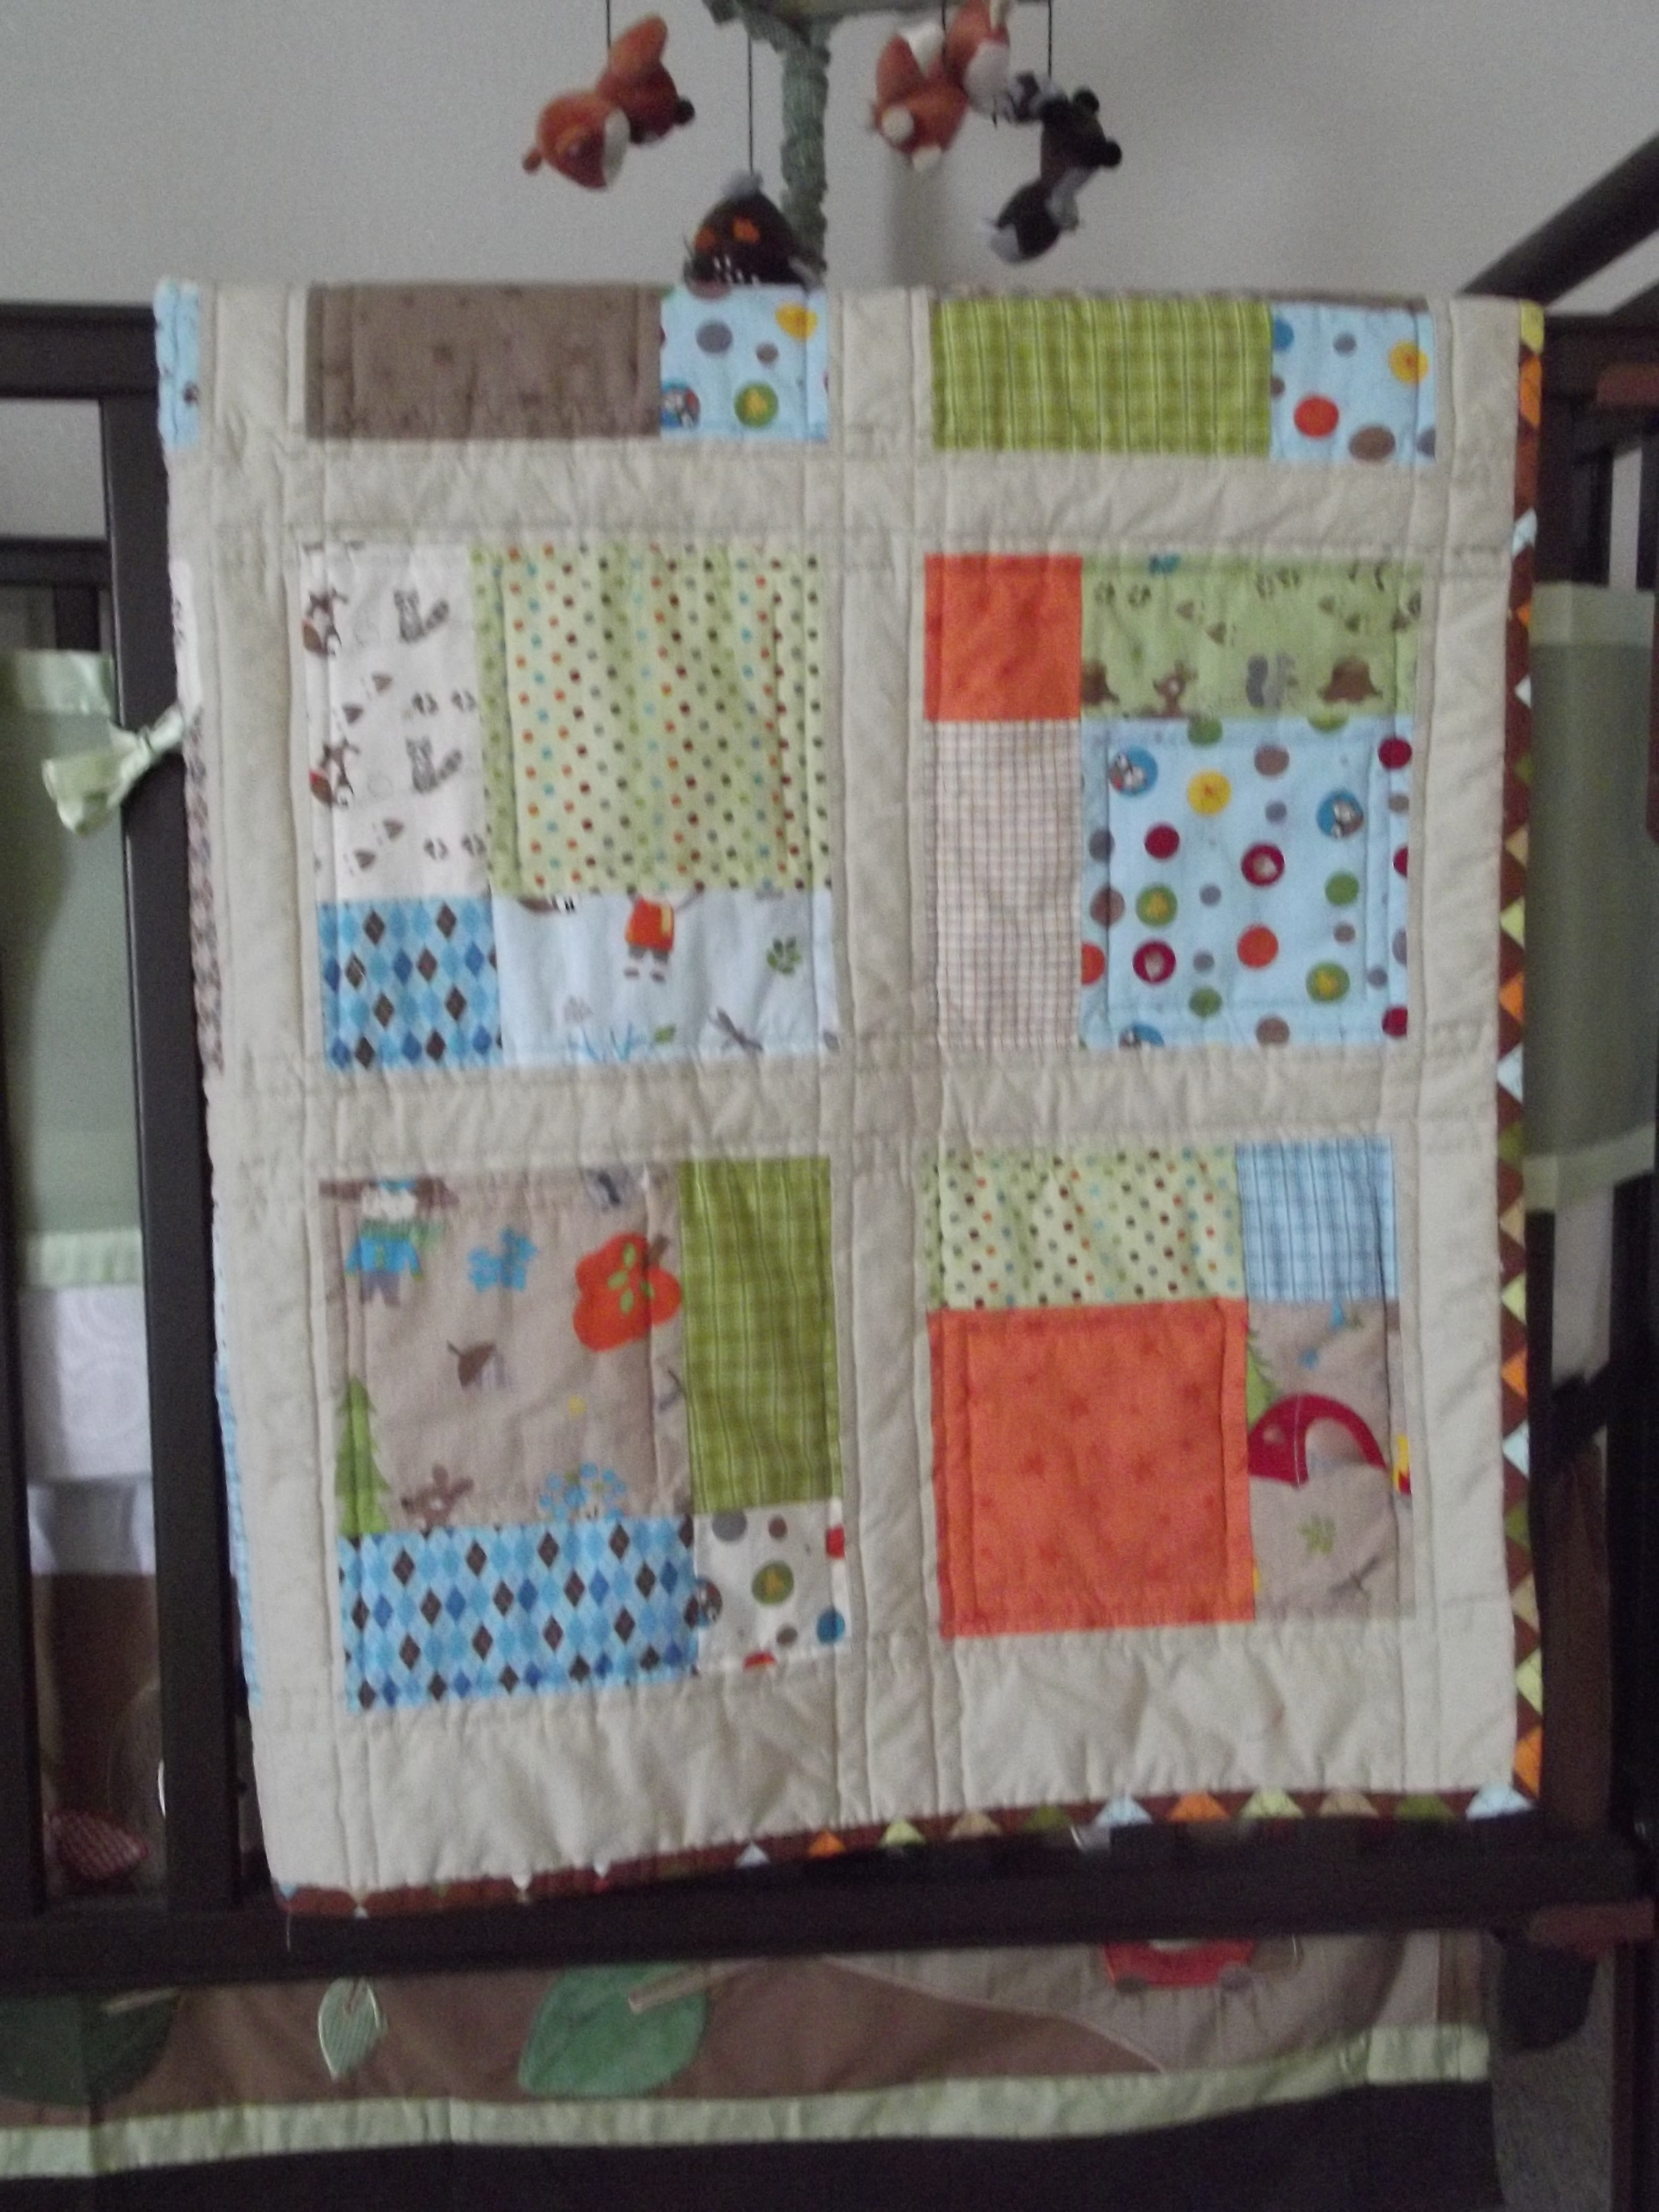 Project #6 and #7: A Half-Moon Crib Quilt and Pillow Cover